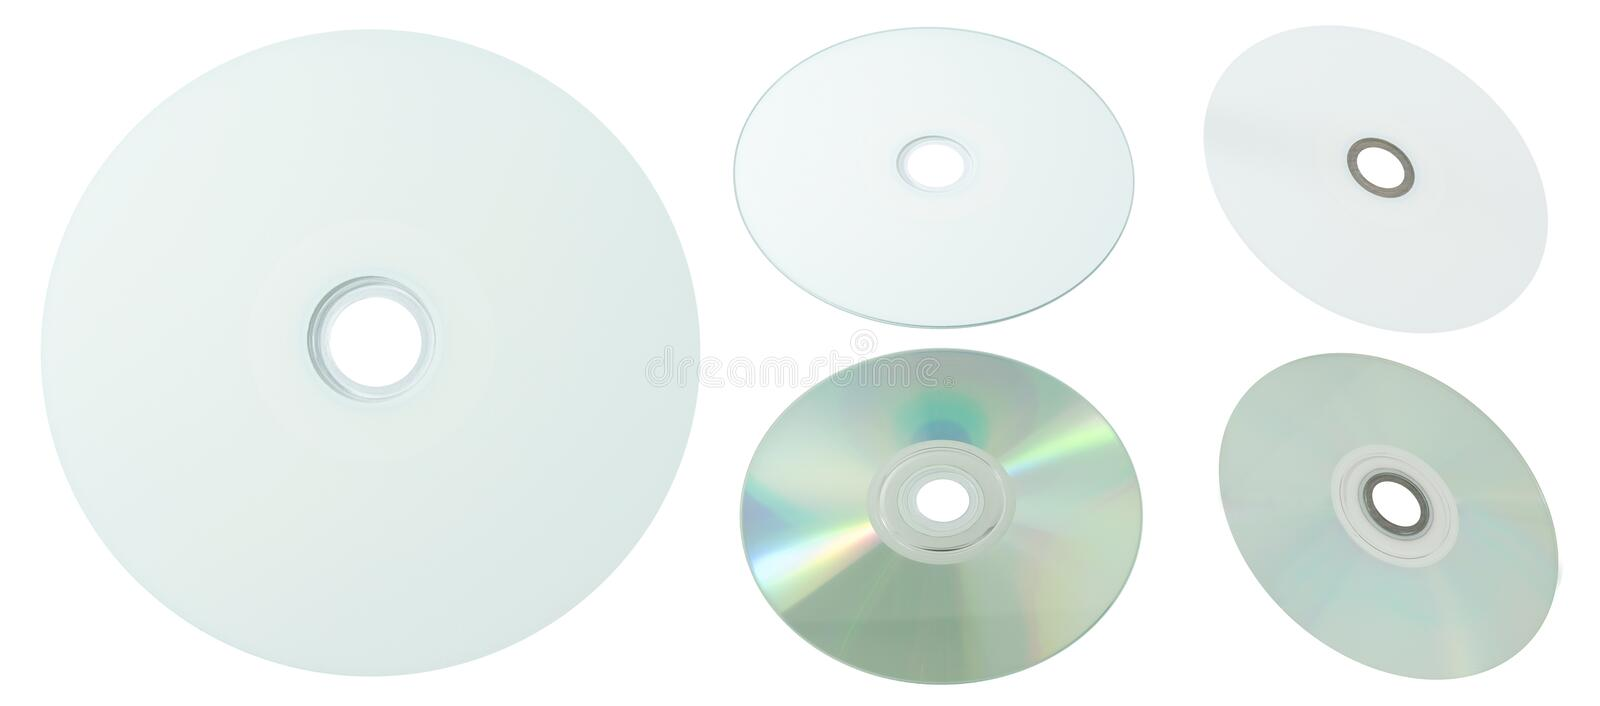 Printable CD and DVD Compact Disc on White Background royalty free stock photos